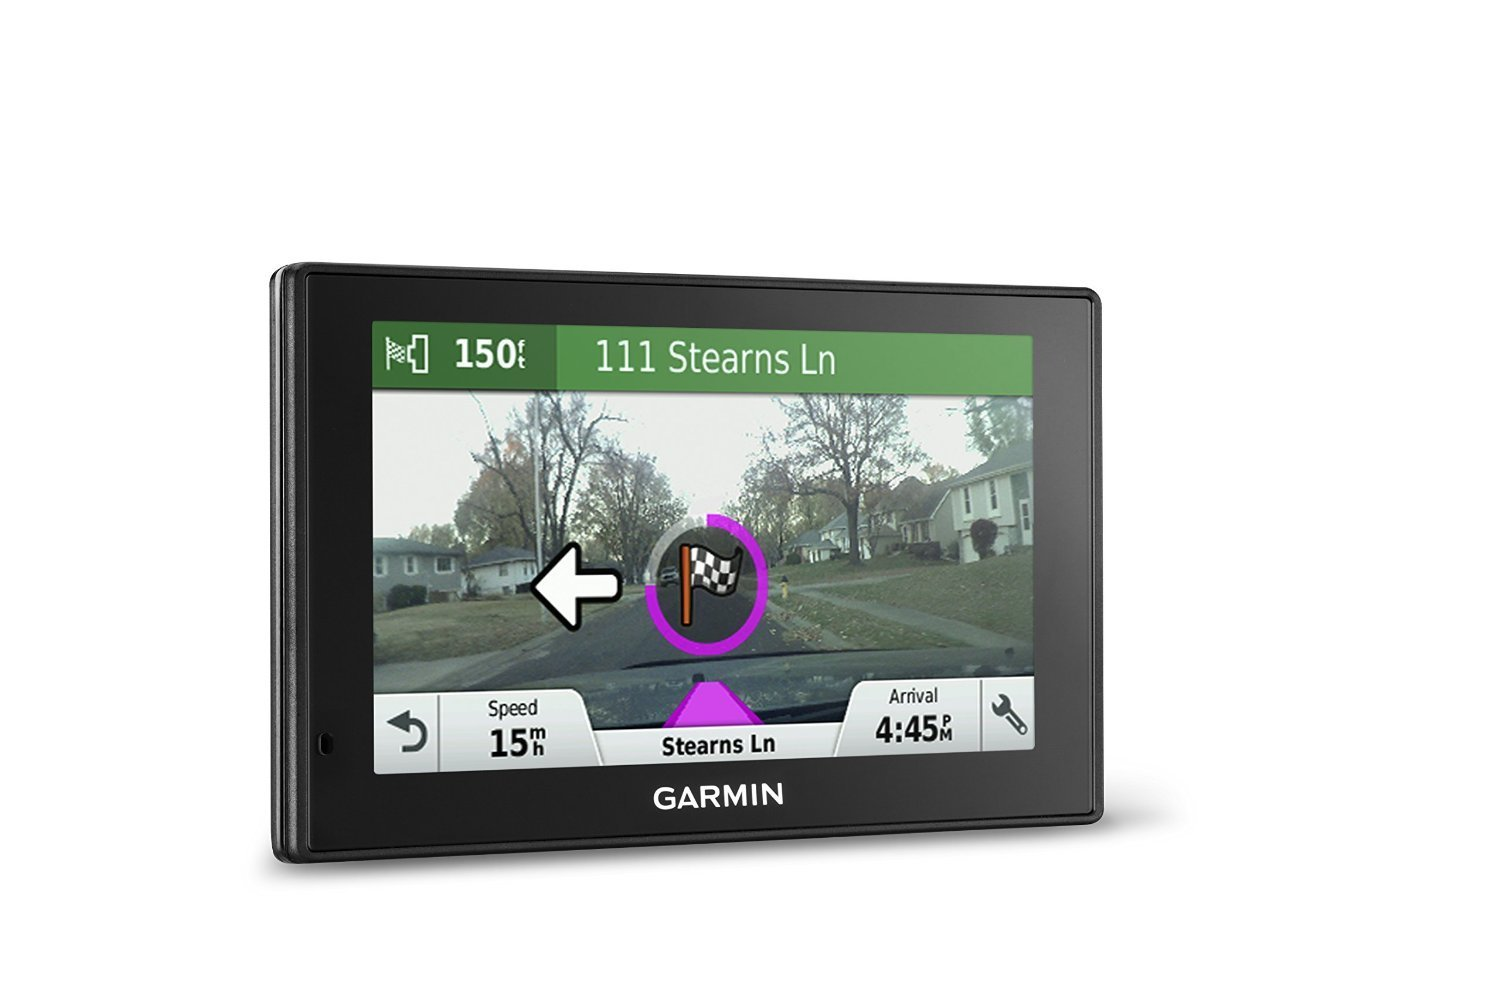 Garmin DriveAssist 50 NA LMT GPS Navigator System with Built-in Dash Cam, Camera-assisted Alerts, Lifetime Maps and Traffic, Smart Notifications, and Voice Activation (Certified Refurbished)